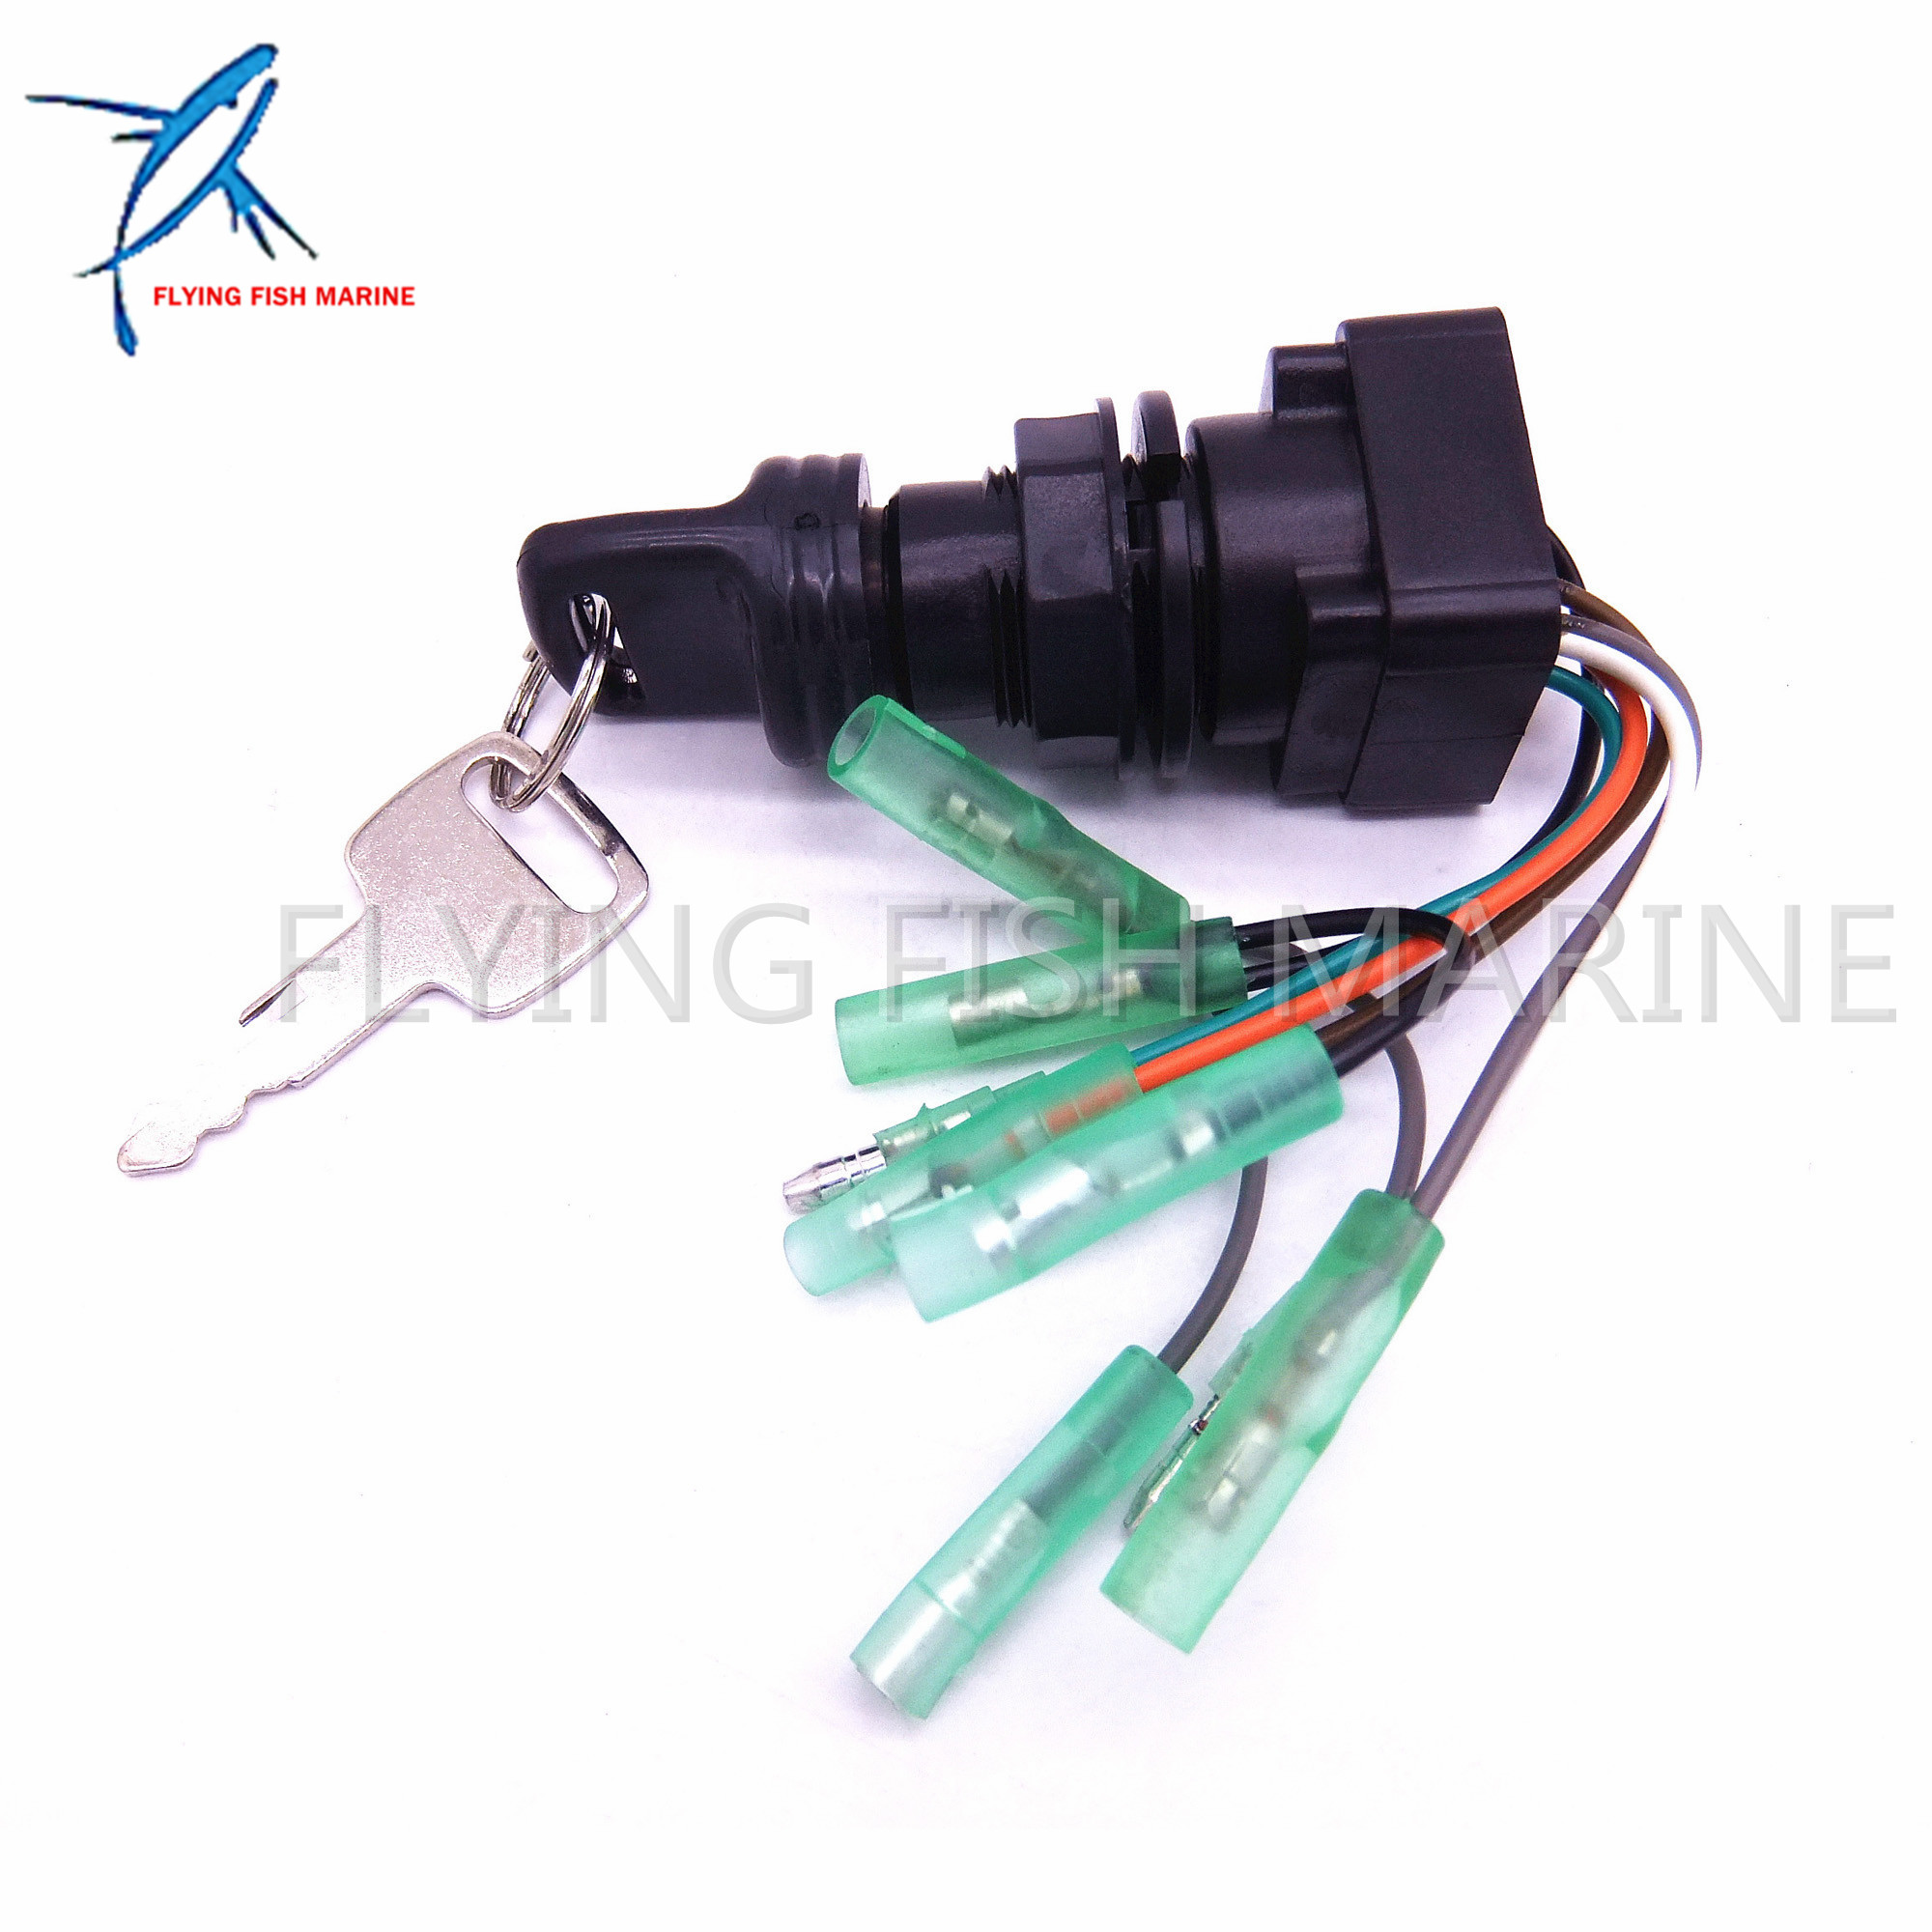 Outboard Wiring Harness Diagram Get Free Image About Wiring Diagram